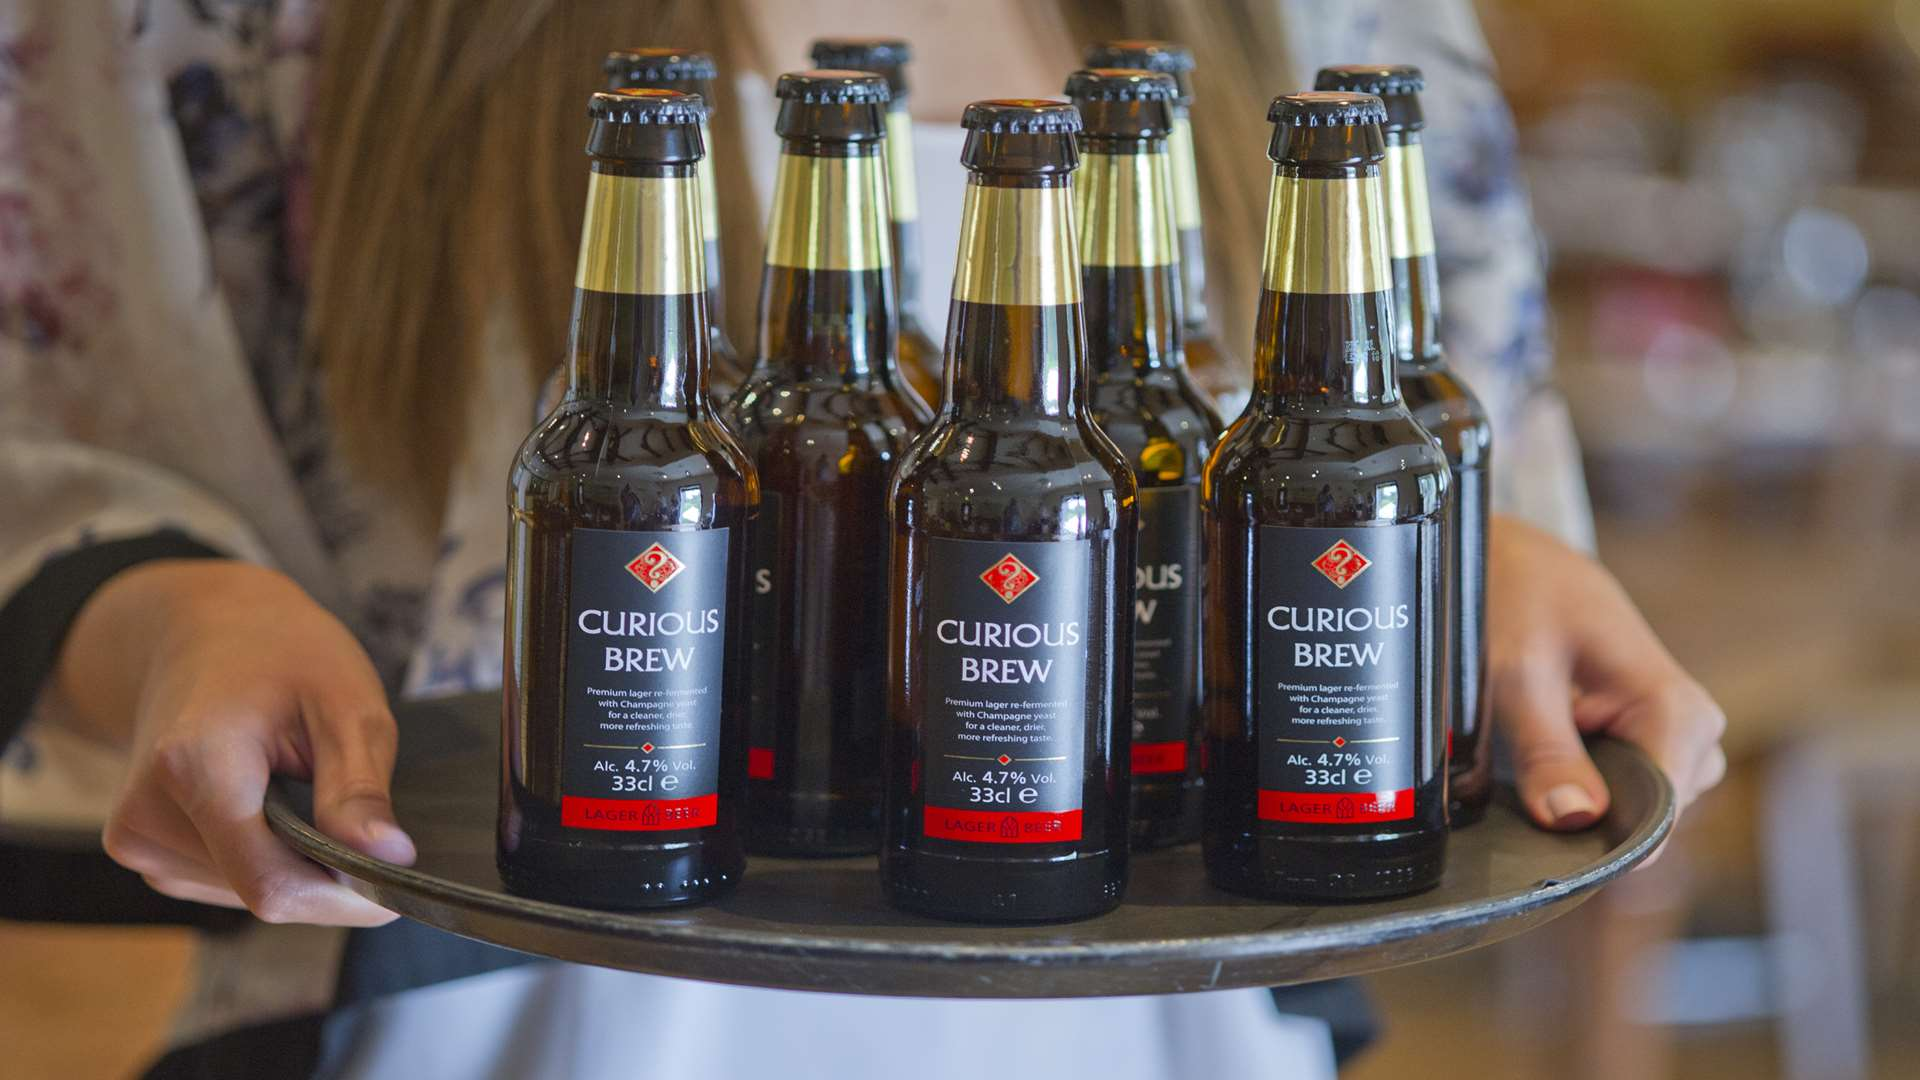 Chapel Down also makes beer under its Curious Drinks brand